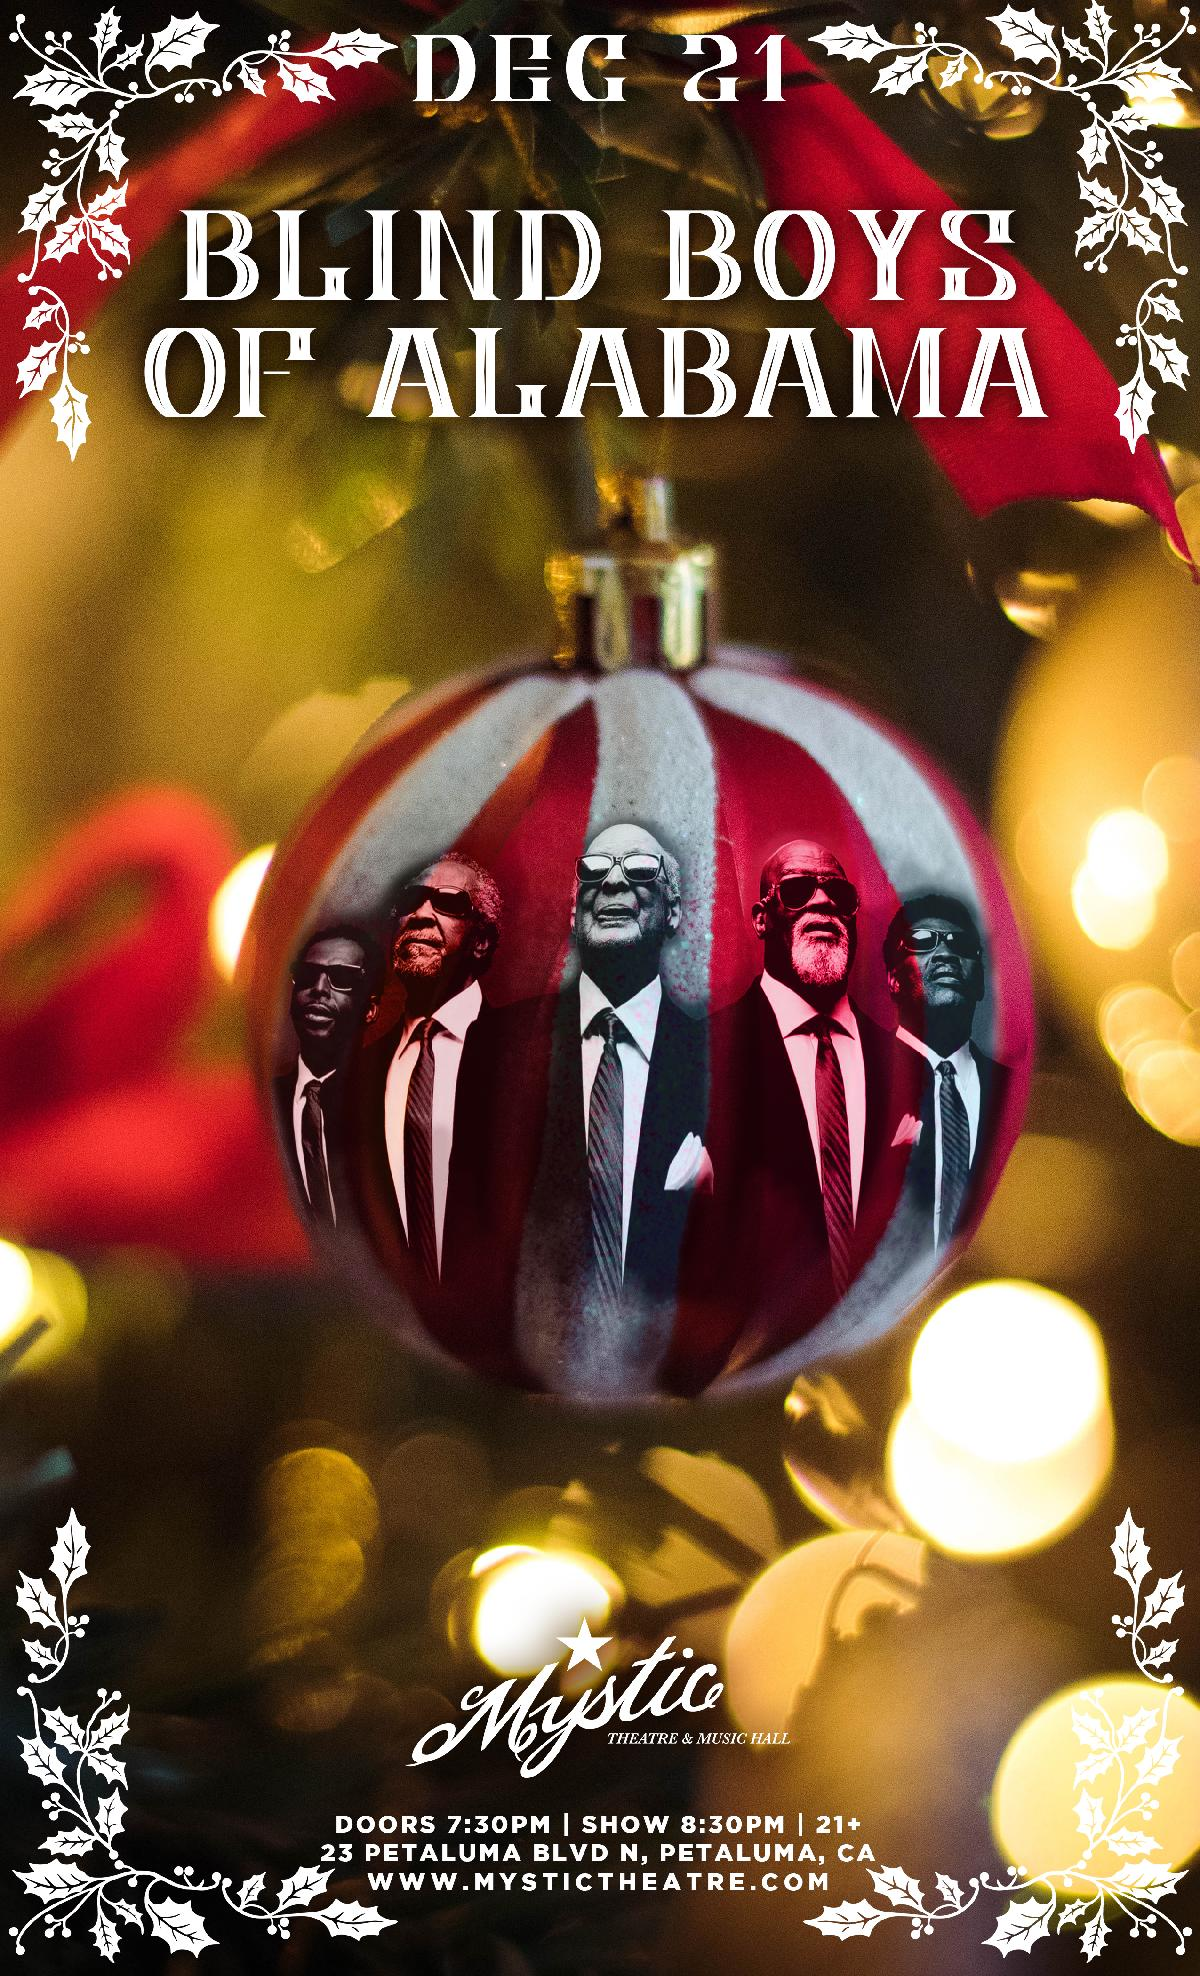 Alabama Christmas.Blind Boys Of Alabama Christmas Show Mystic Theatre